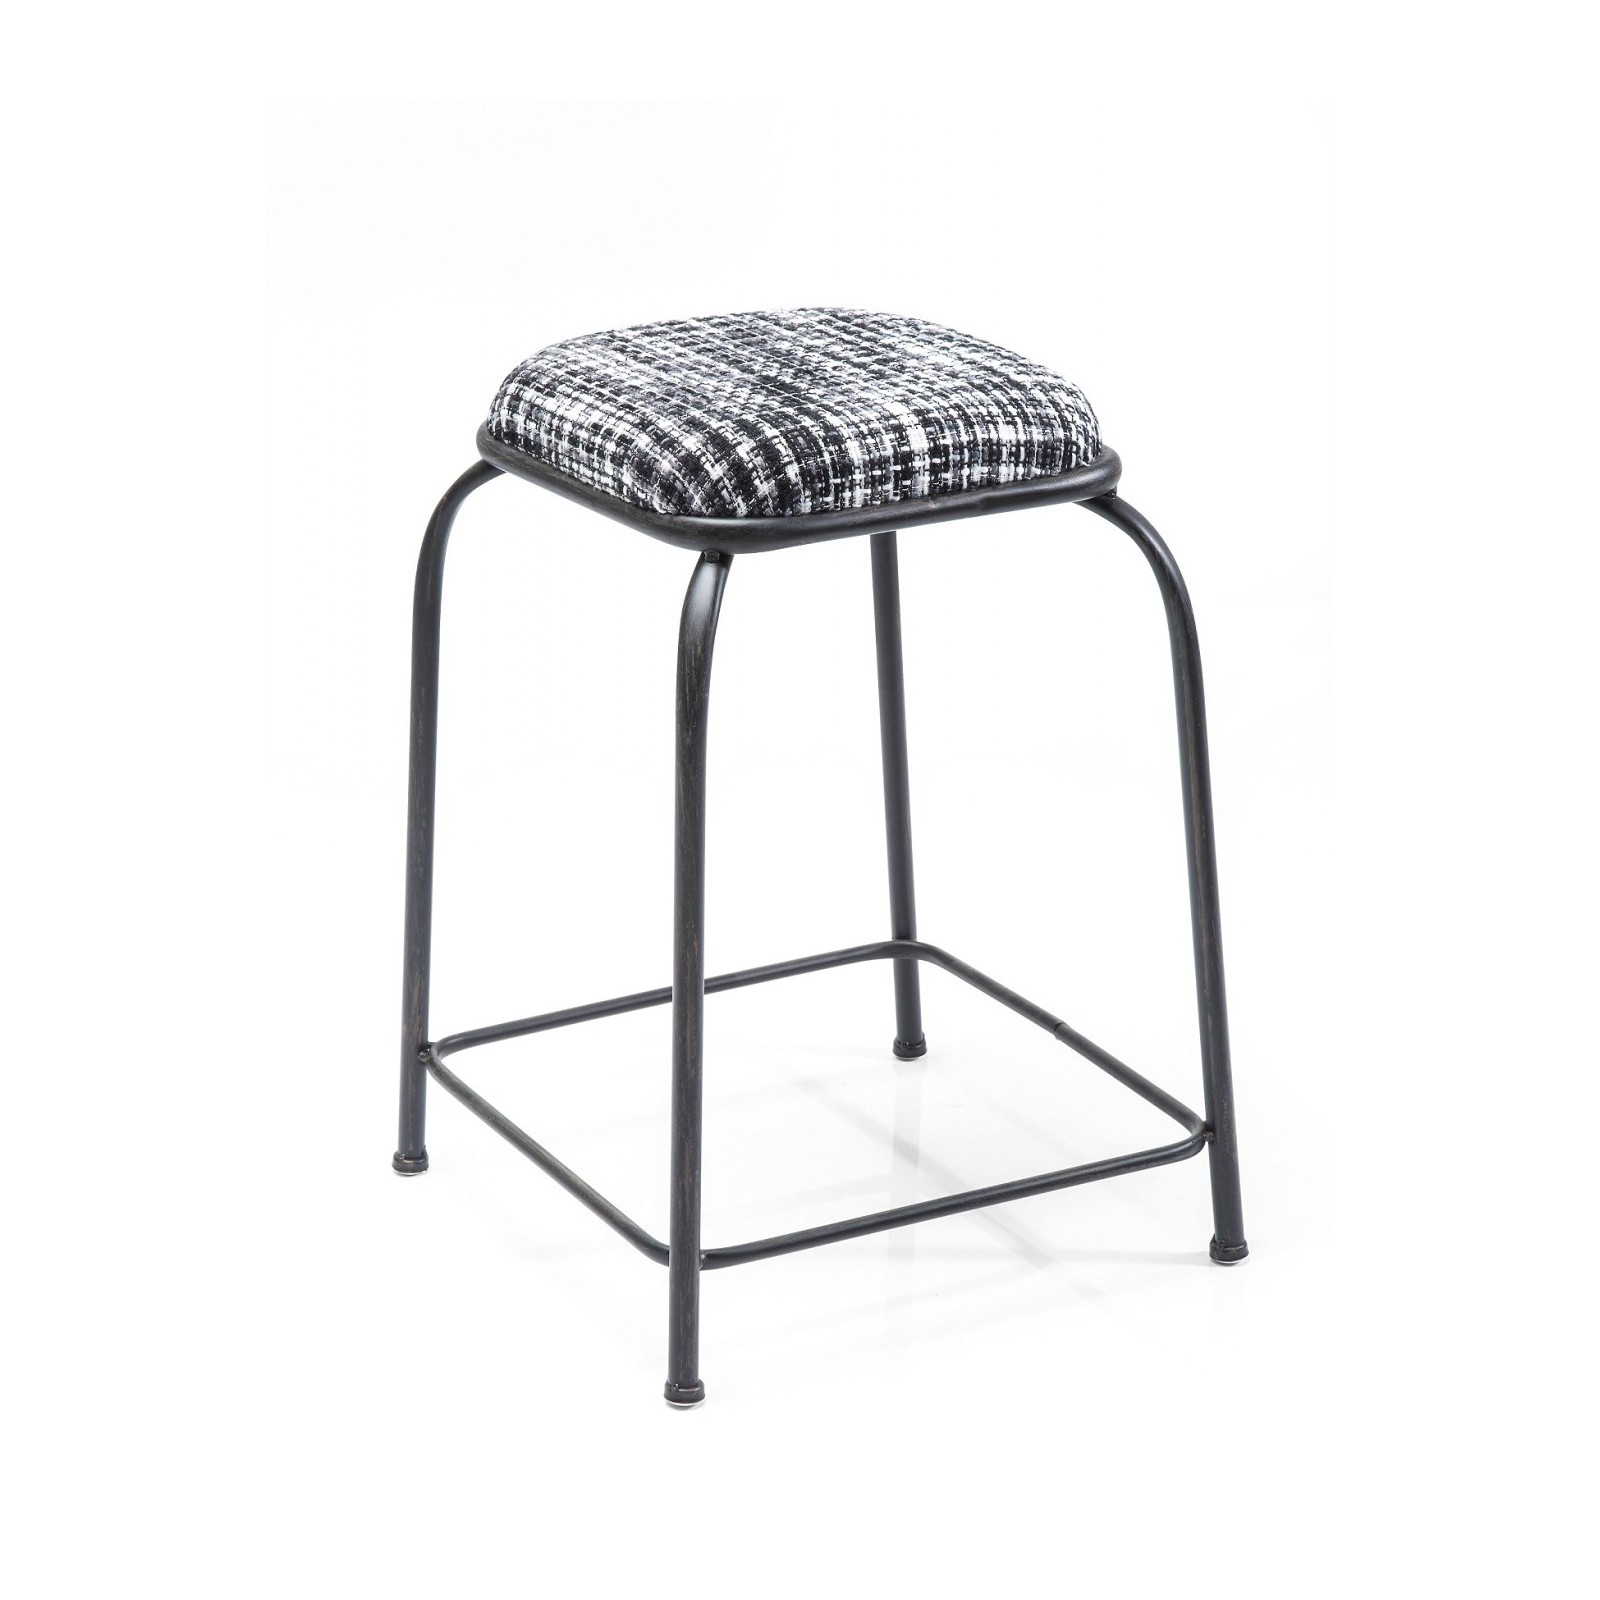 tabouret industriel noir campus kare design. Black Bedroom Furniture Sets. Home Design Ideas